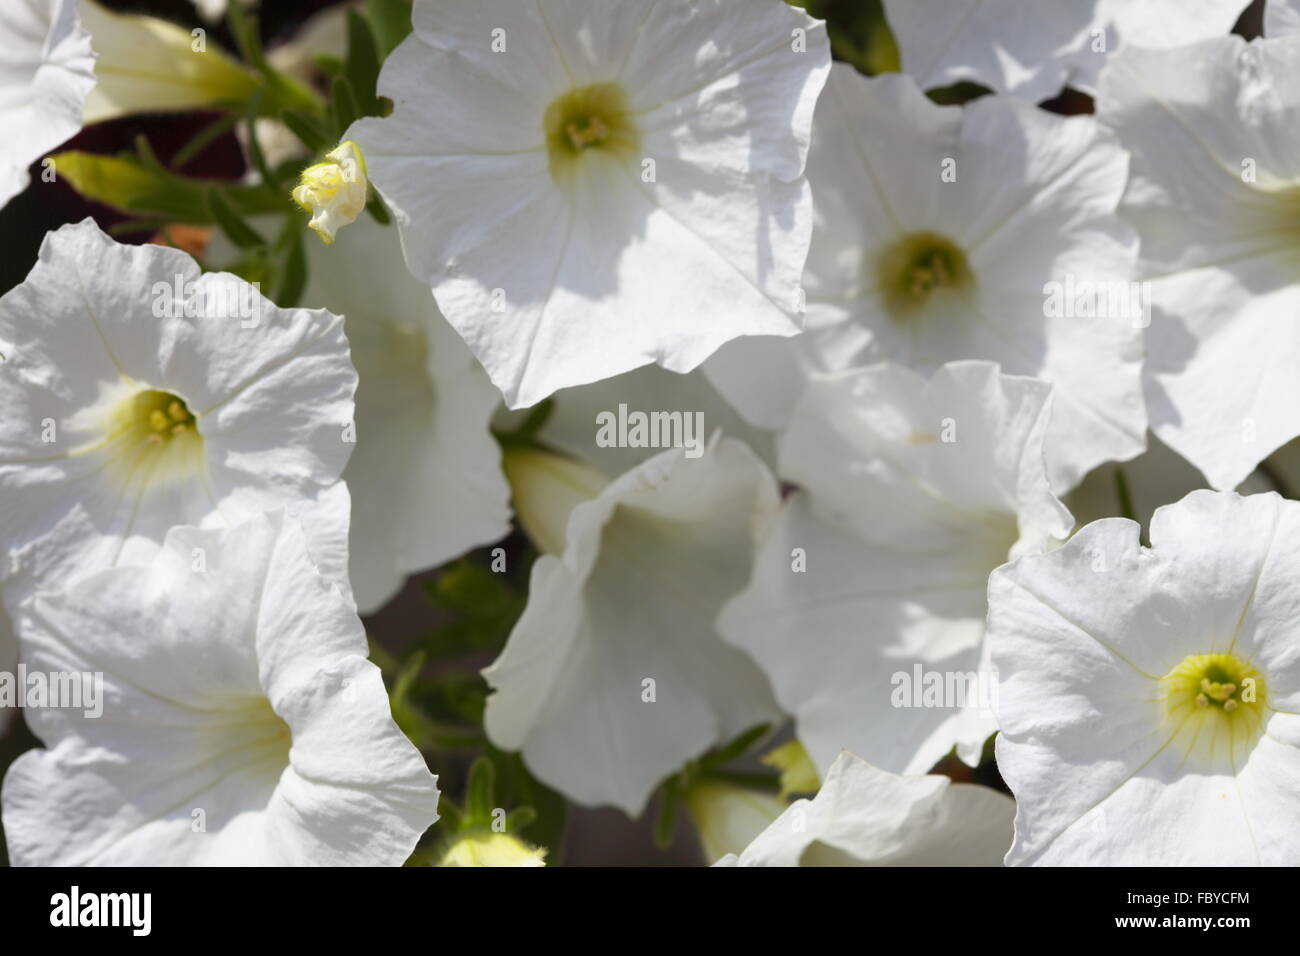 White Petunia Flower Plants In The Garden Stock Photo 93415608 Alamy